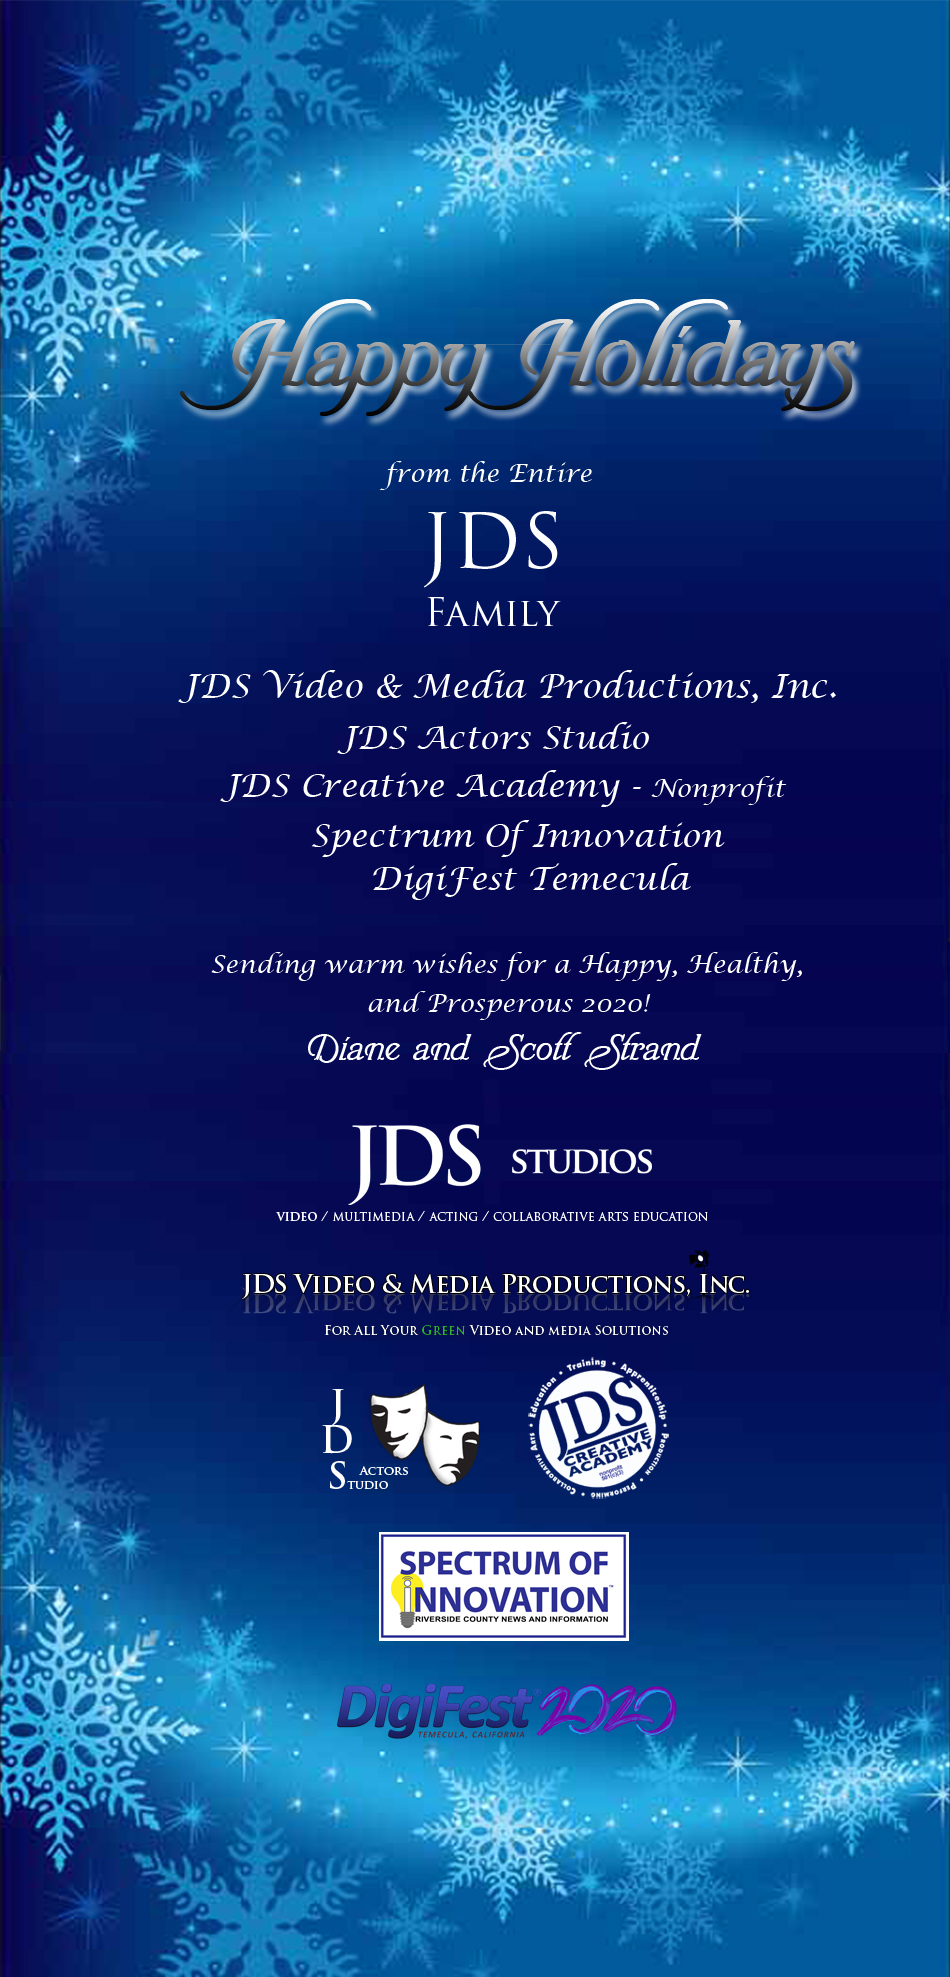 JDS Studios Happy Holidays-2019